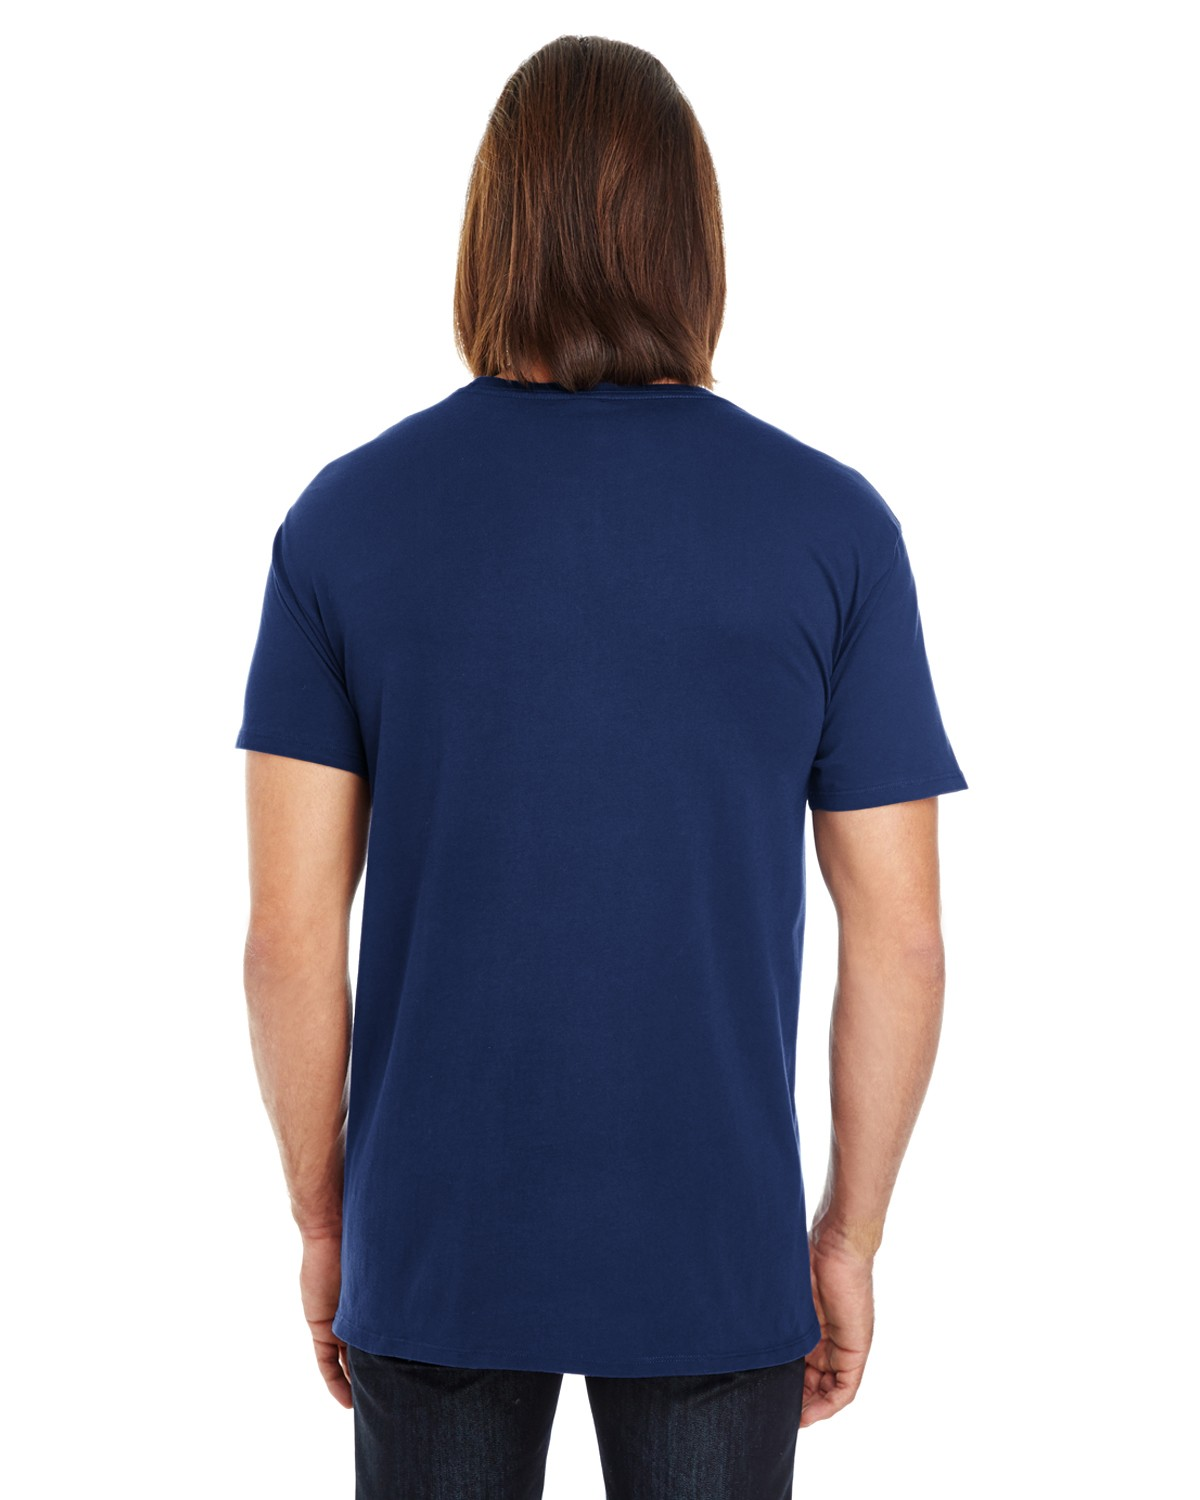 130A Threadfast Apparel NAVY